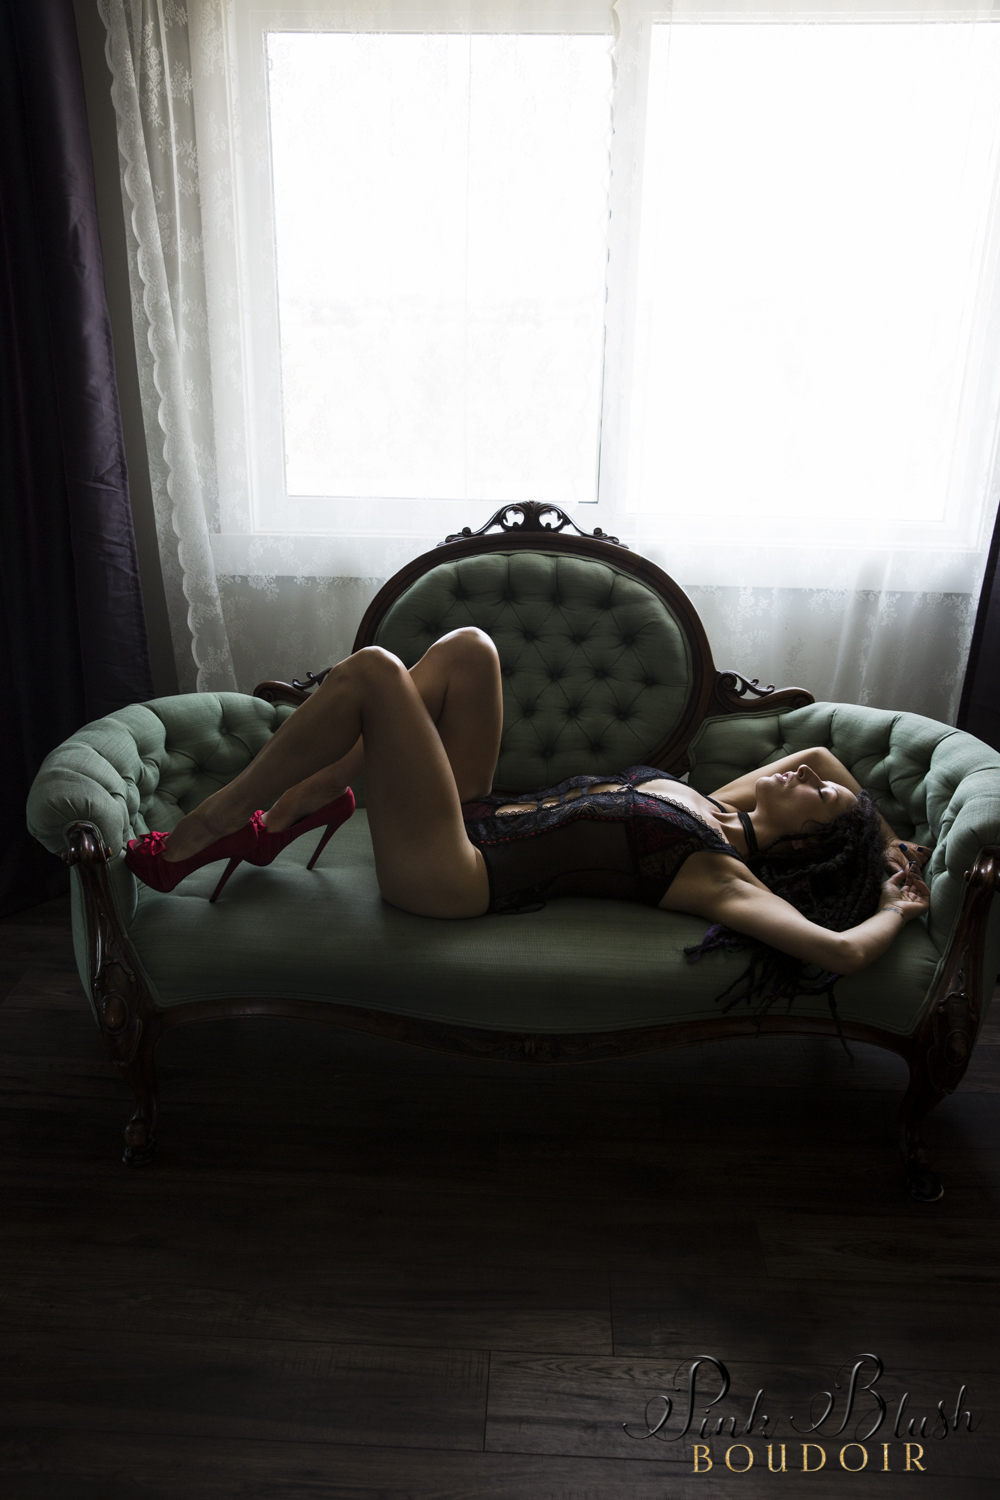 Boudoir Photography Edmonton, woman arched on a couch in a black and red lace bodysuit